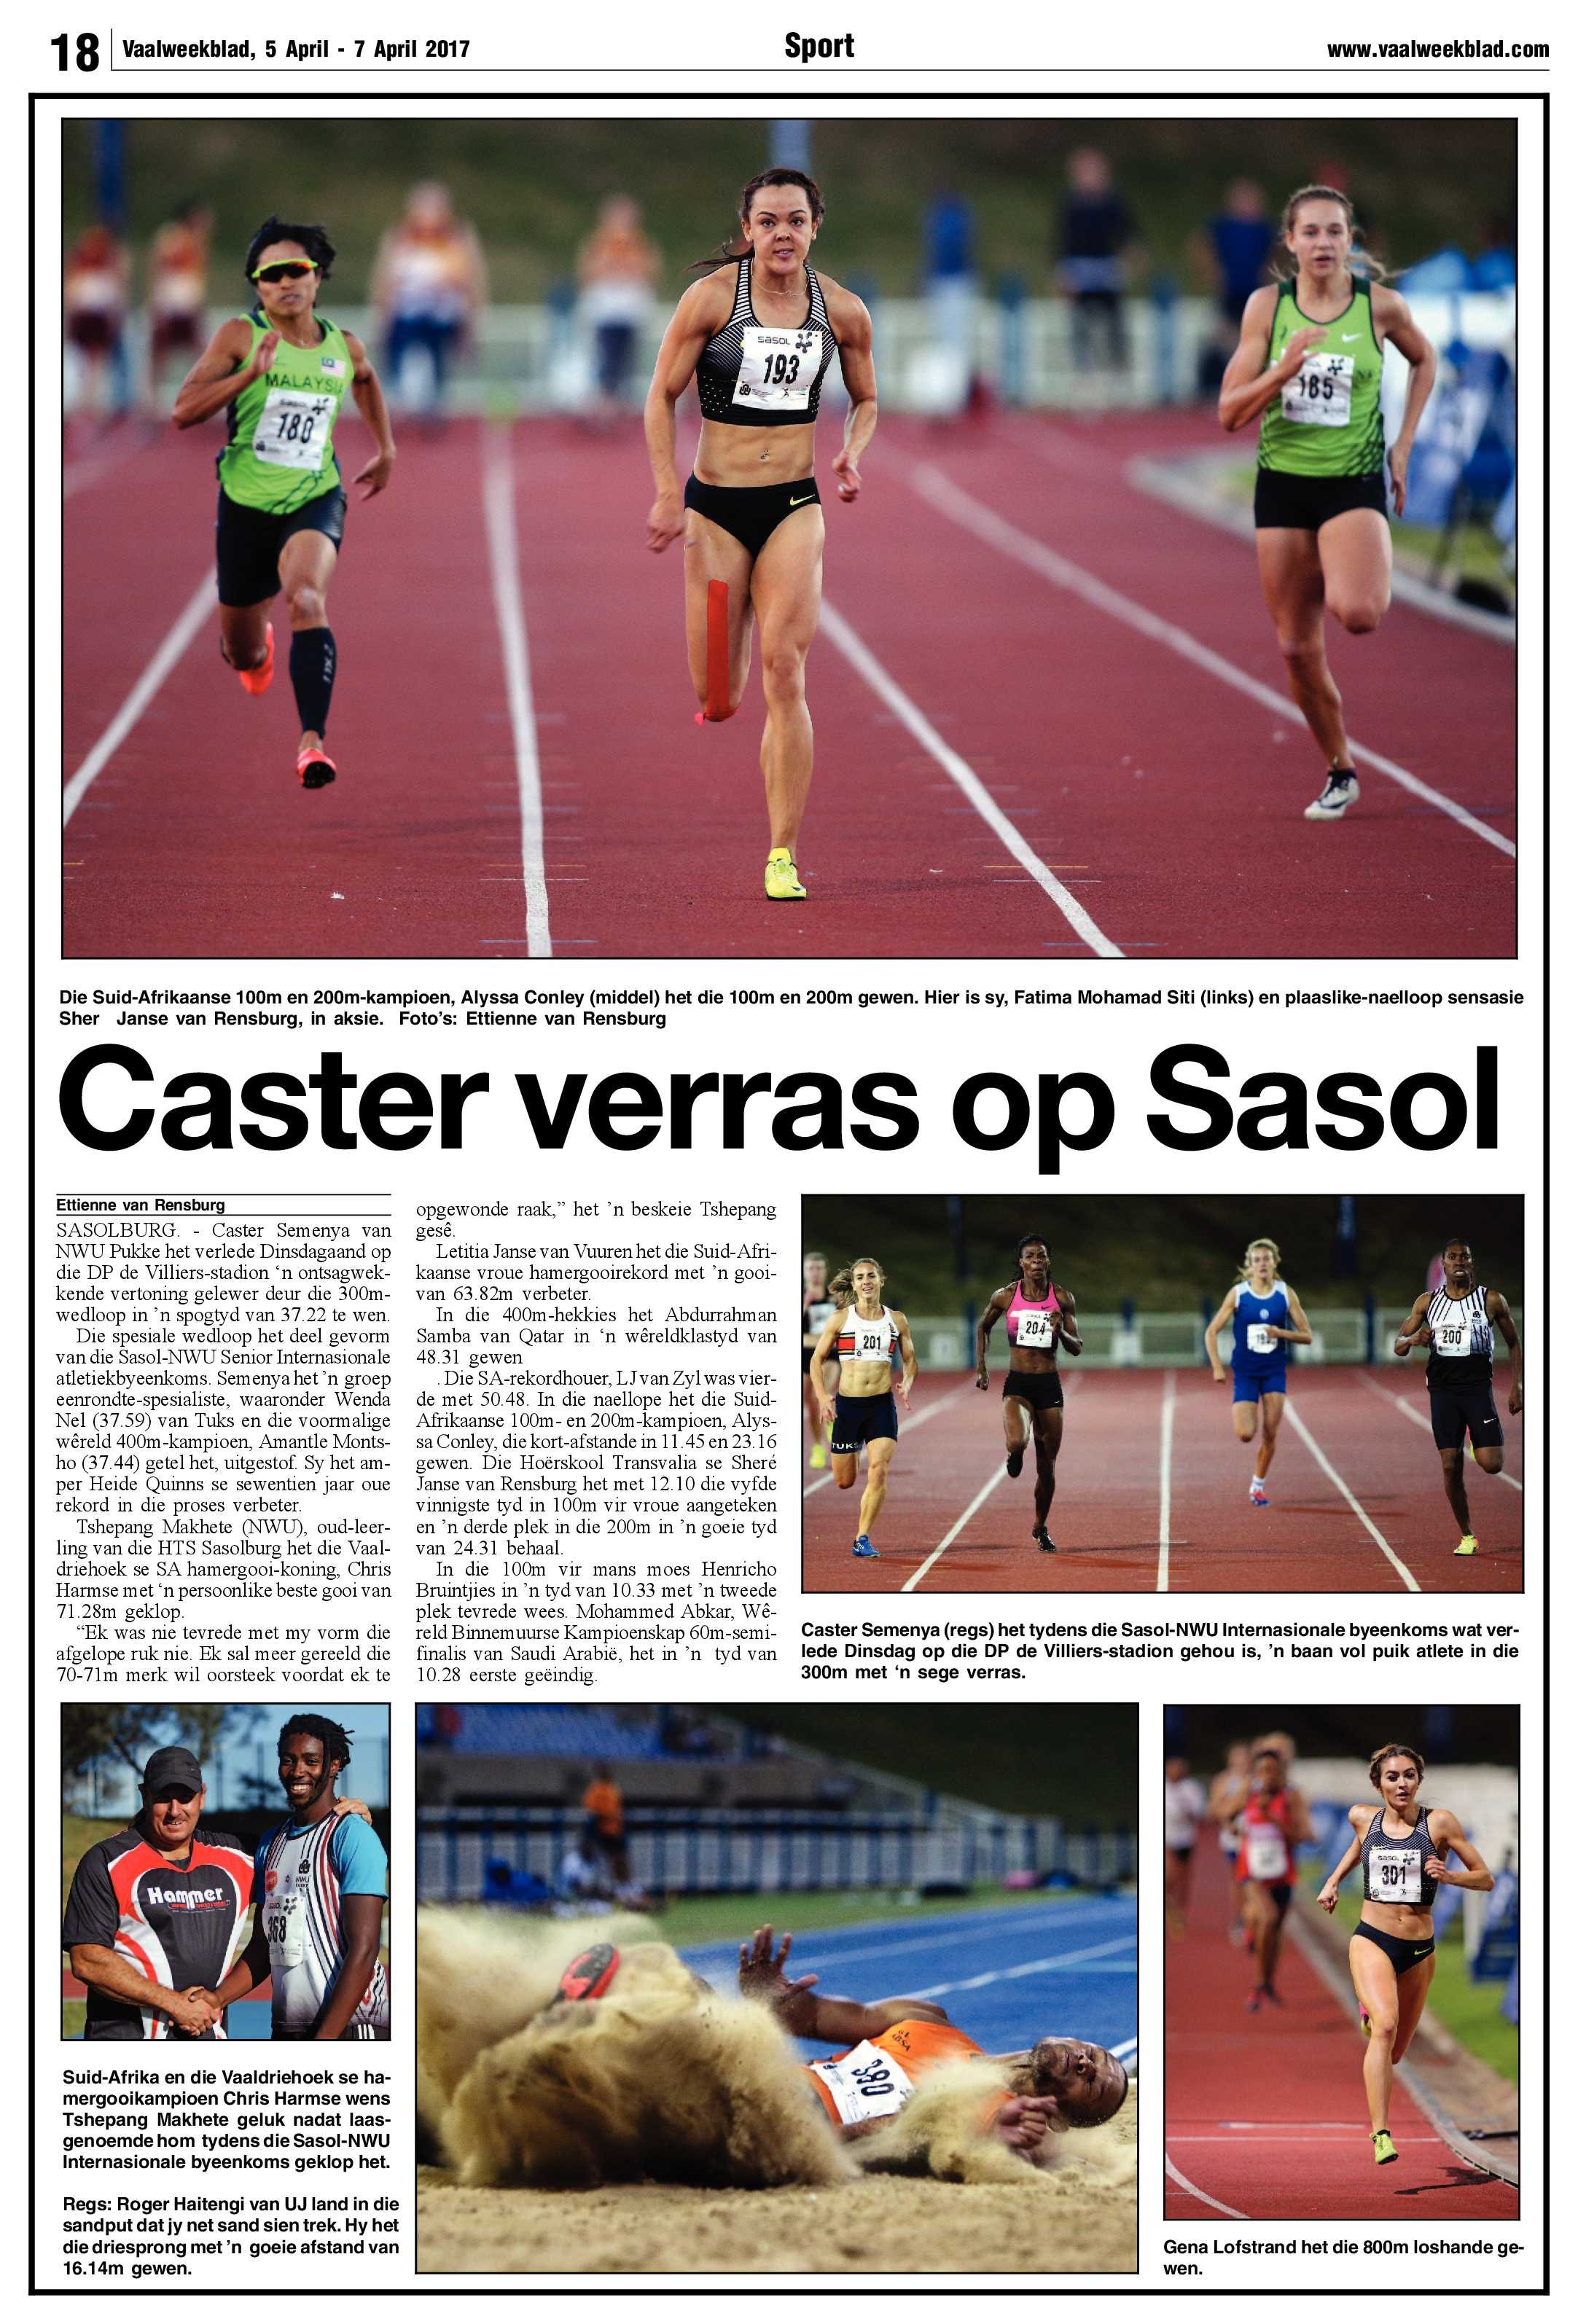 vaalweekblad-5-7-april-2017-2-epapers-page-18